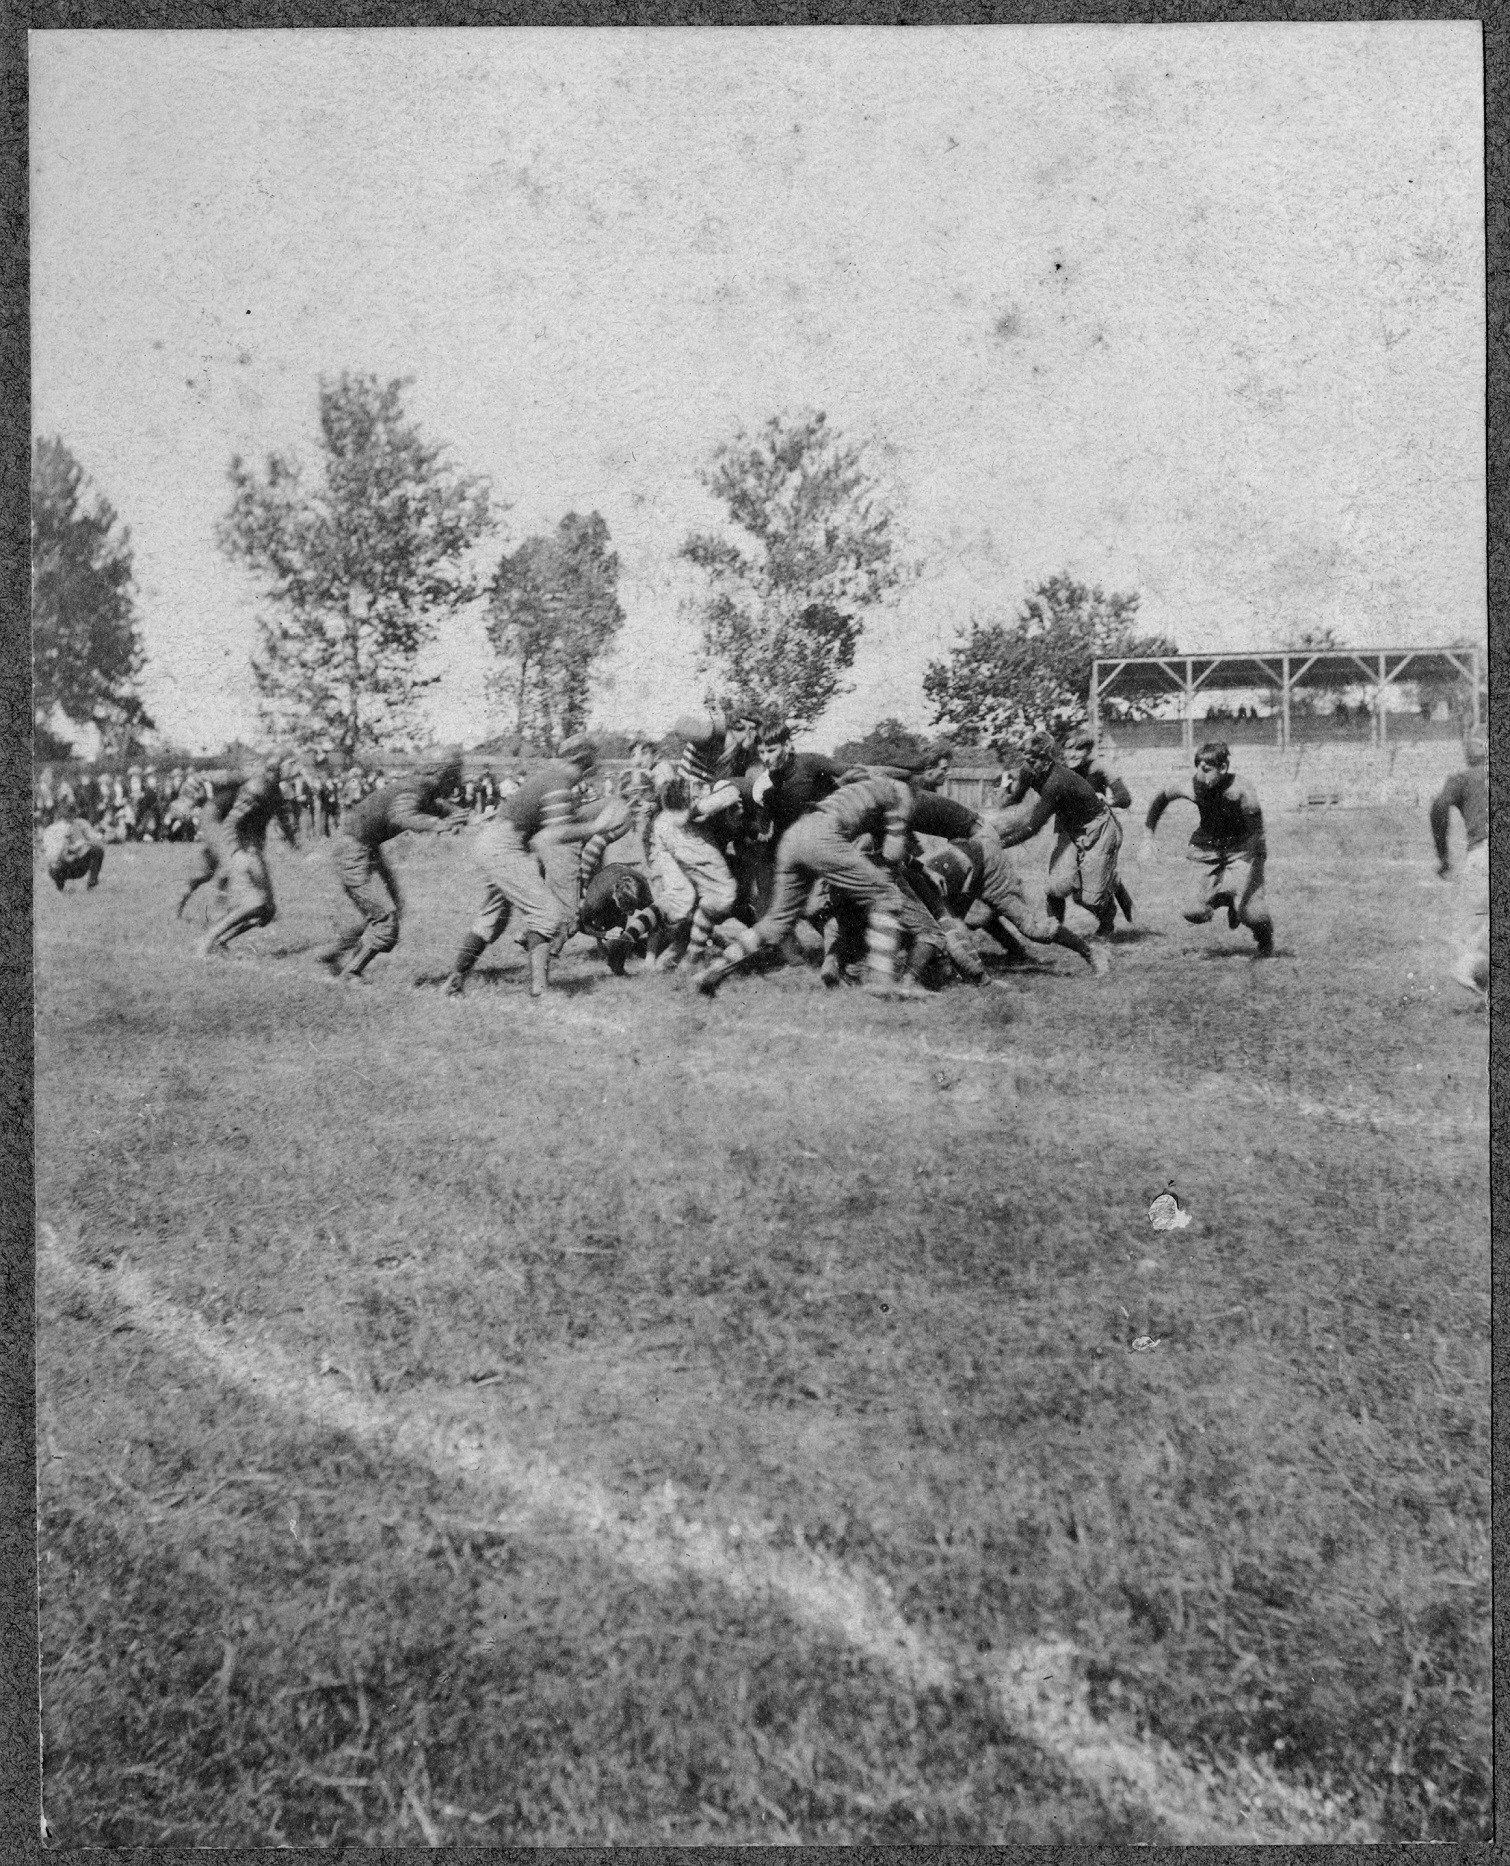 A football game in the early 1900s. Image from the North Carolina Collection at UNC.